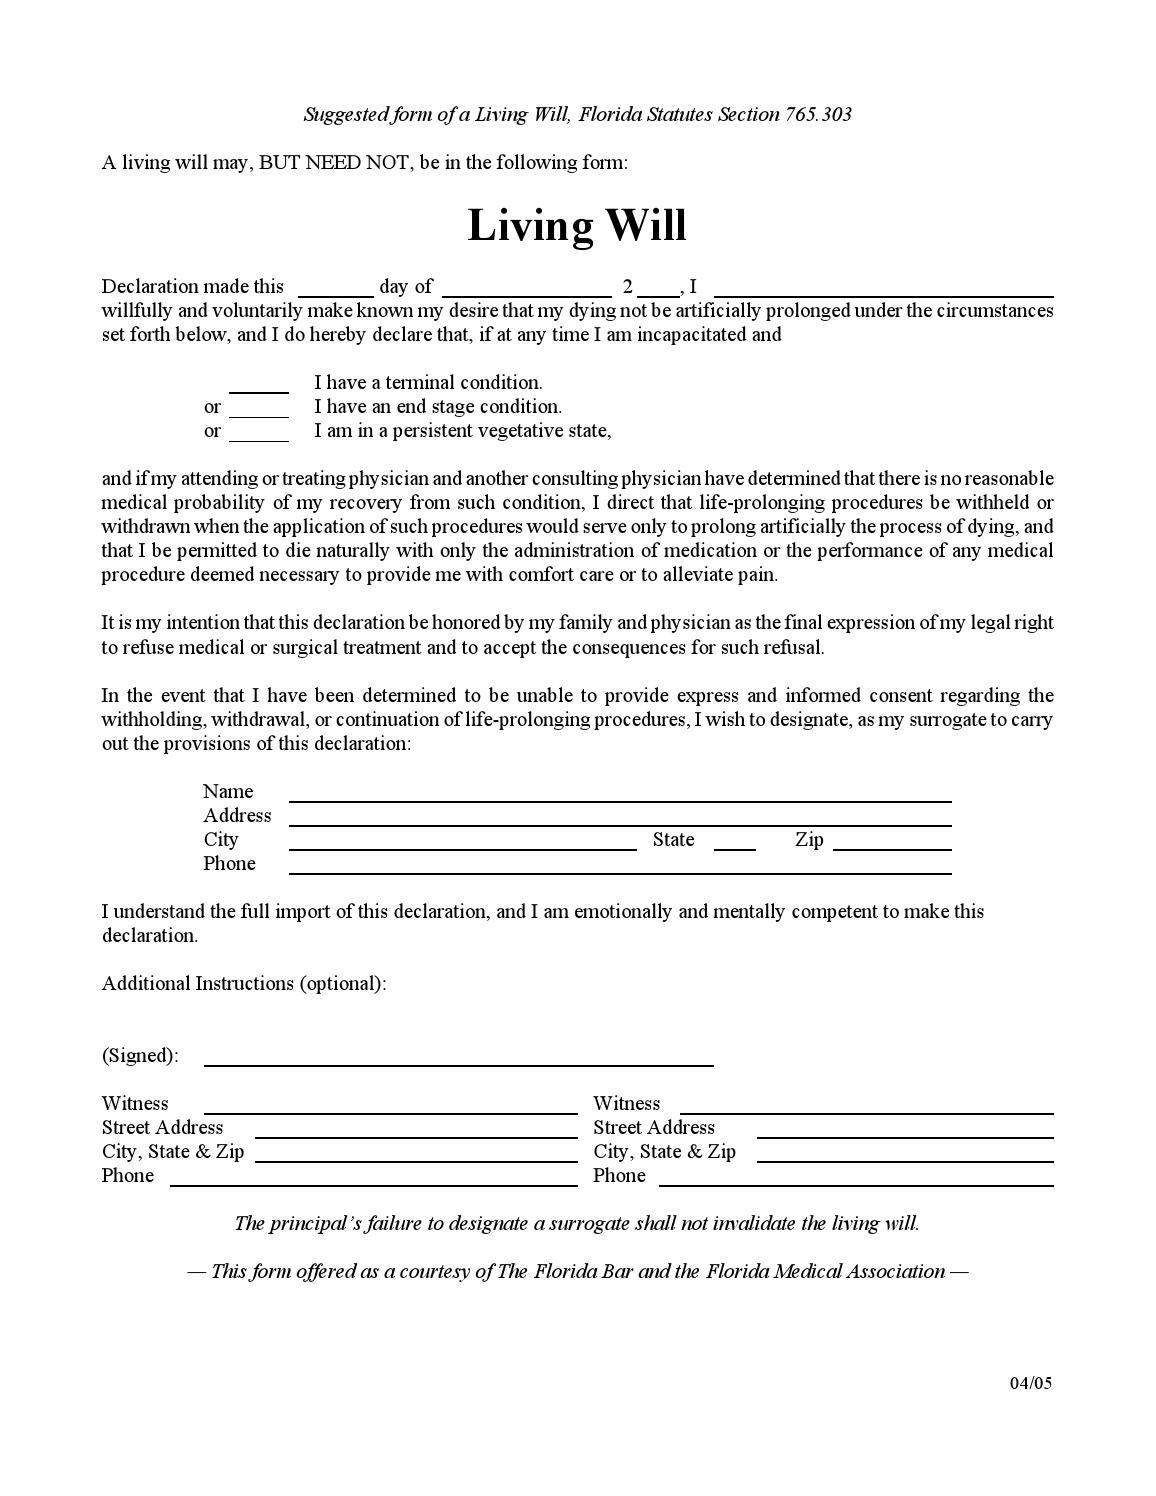 Florida living will by wfla newschannel8 issuu for Sample of living will template